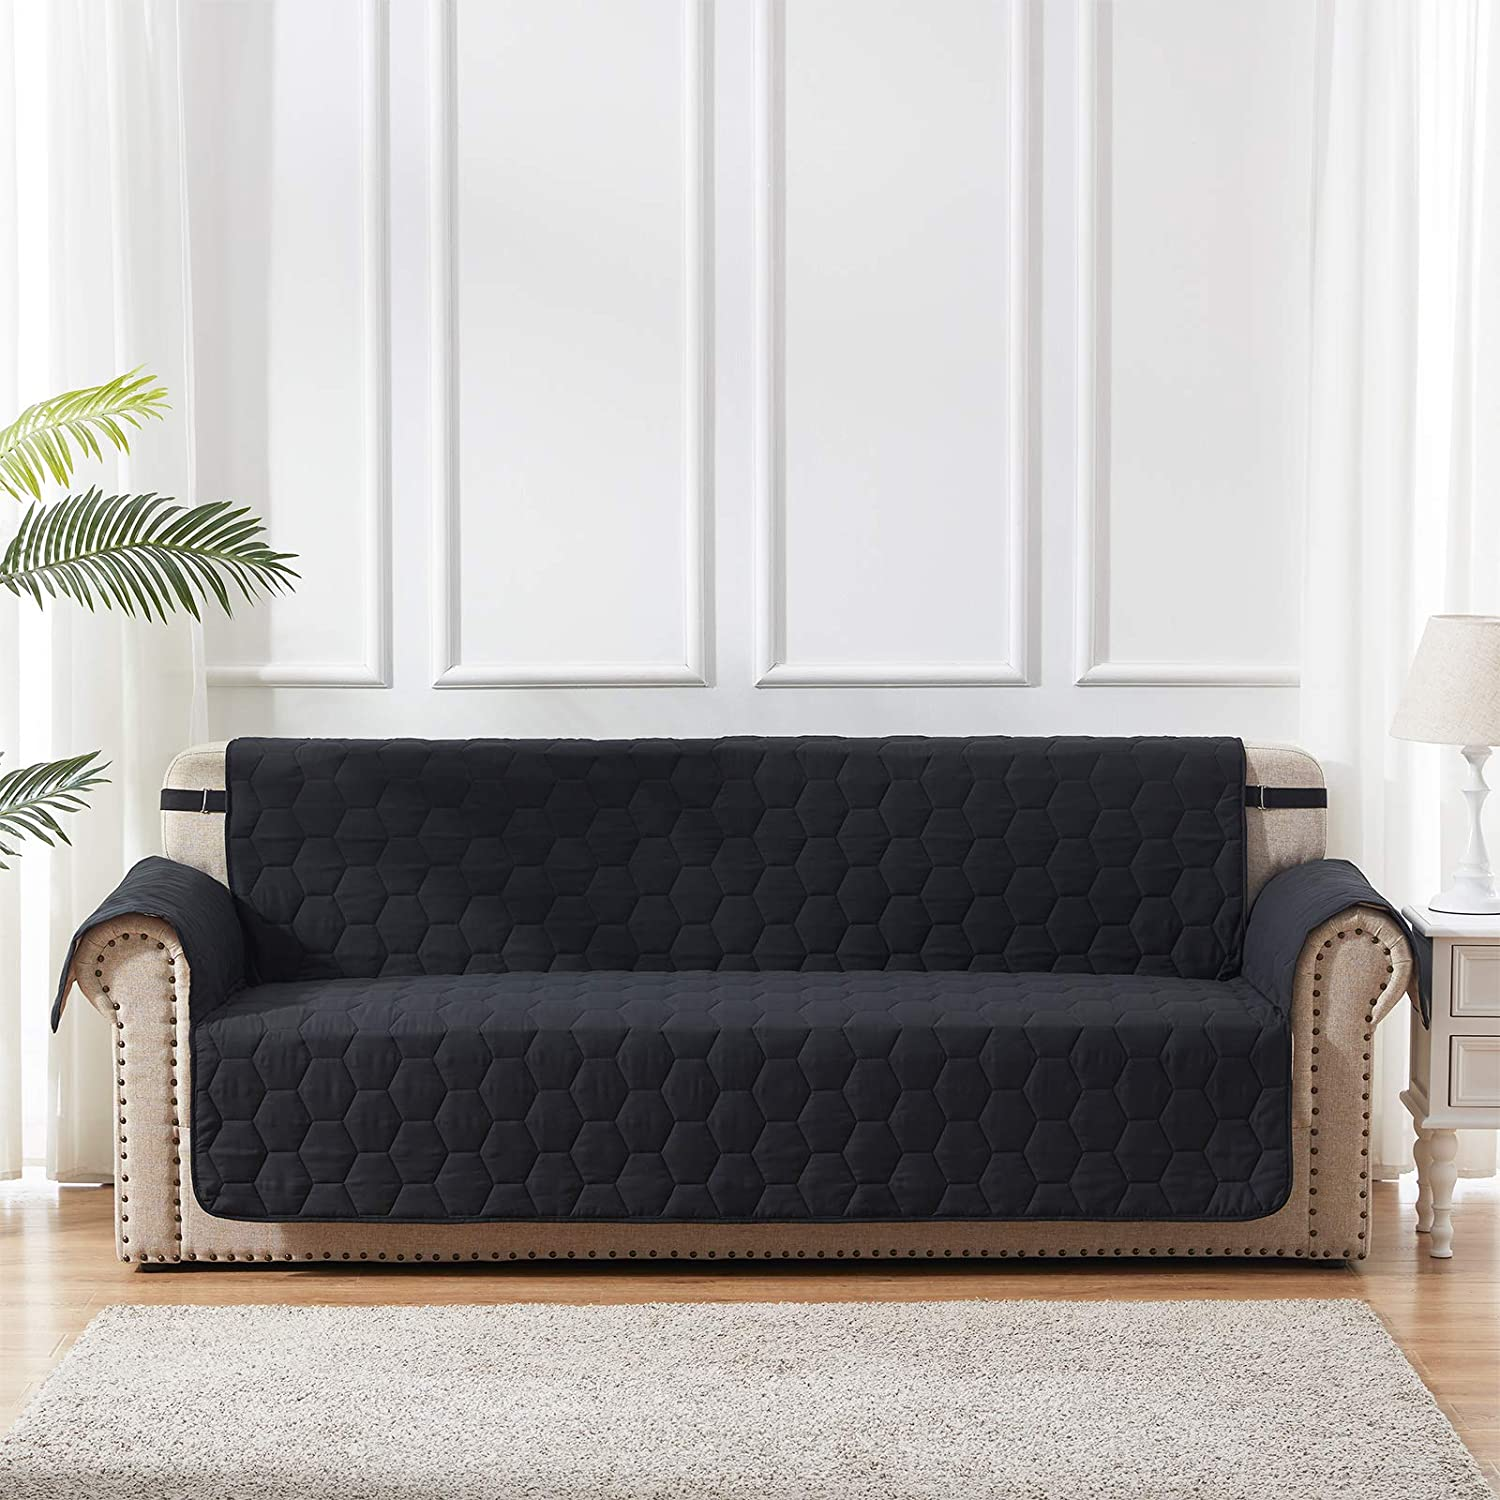 Black Loveseat Covers Furniture Couch Cover with Adjustable Elastic Strap and Non-Slip Backing for Dogs Cats Kids Honeycomb Quilted